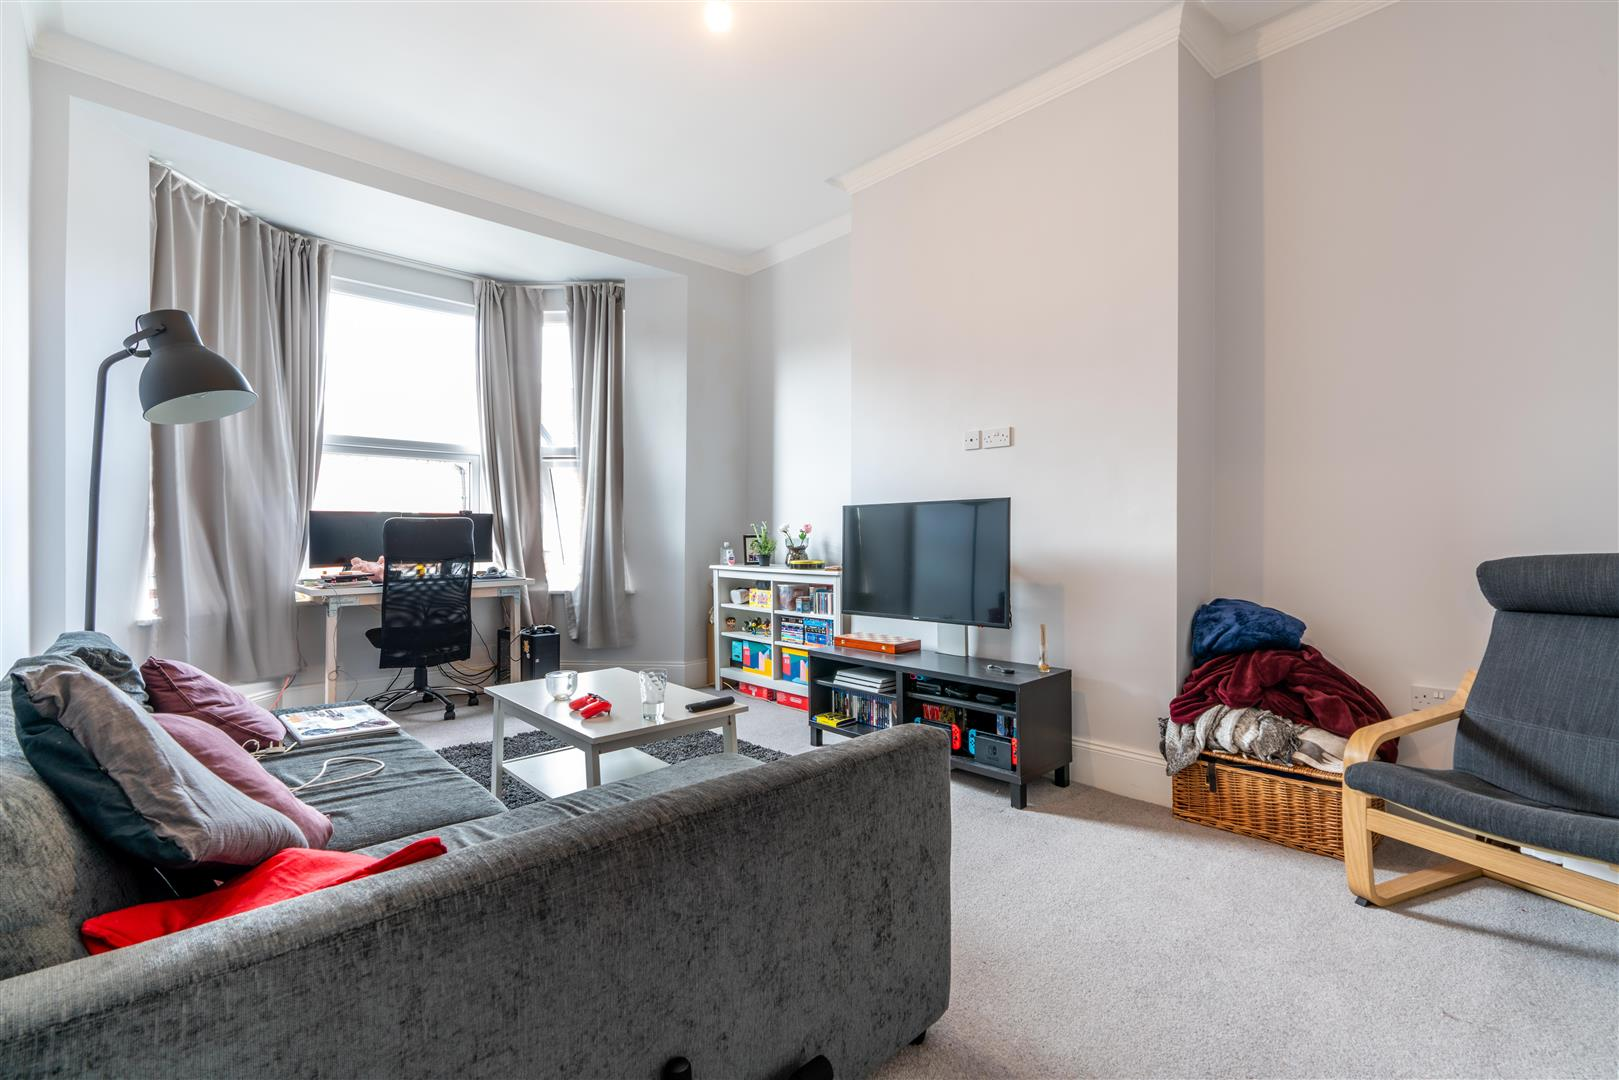 2 bed flat to rent in Sandringham Road, Newcastle Upon Tyne - Property Image 1